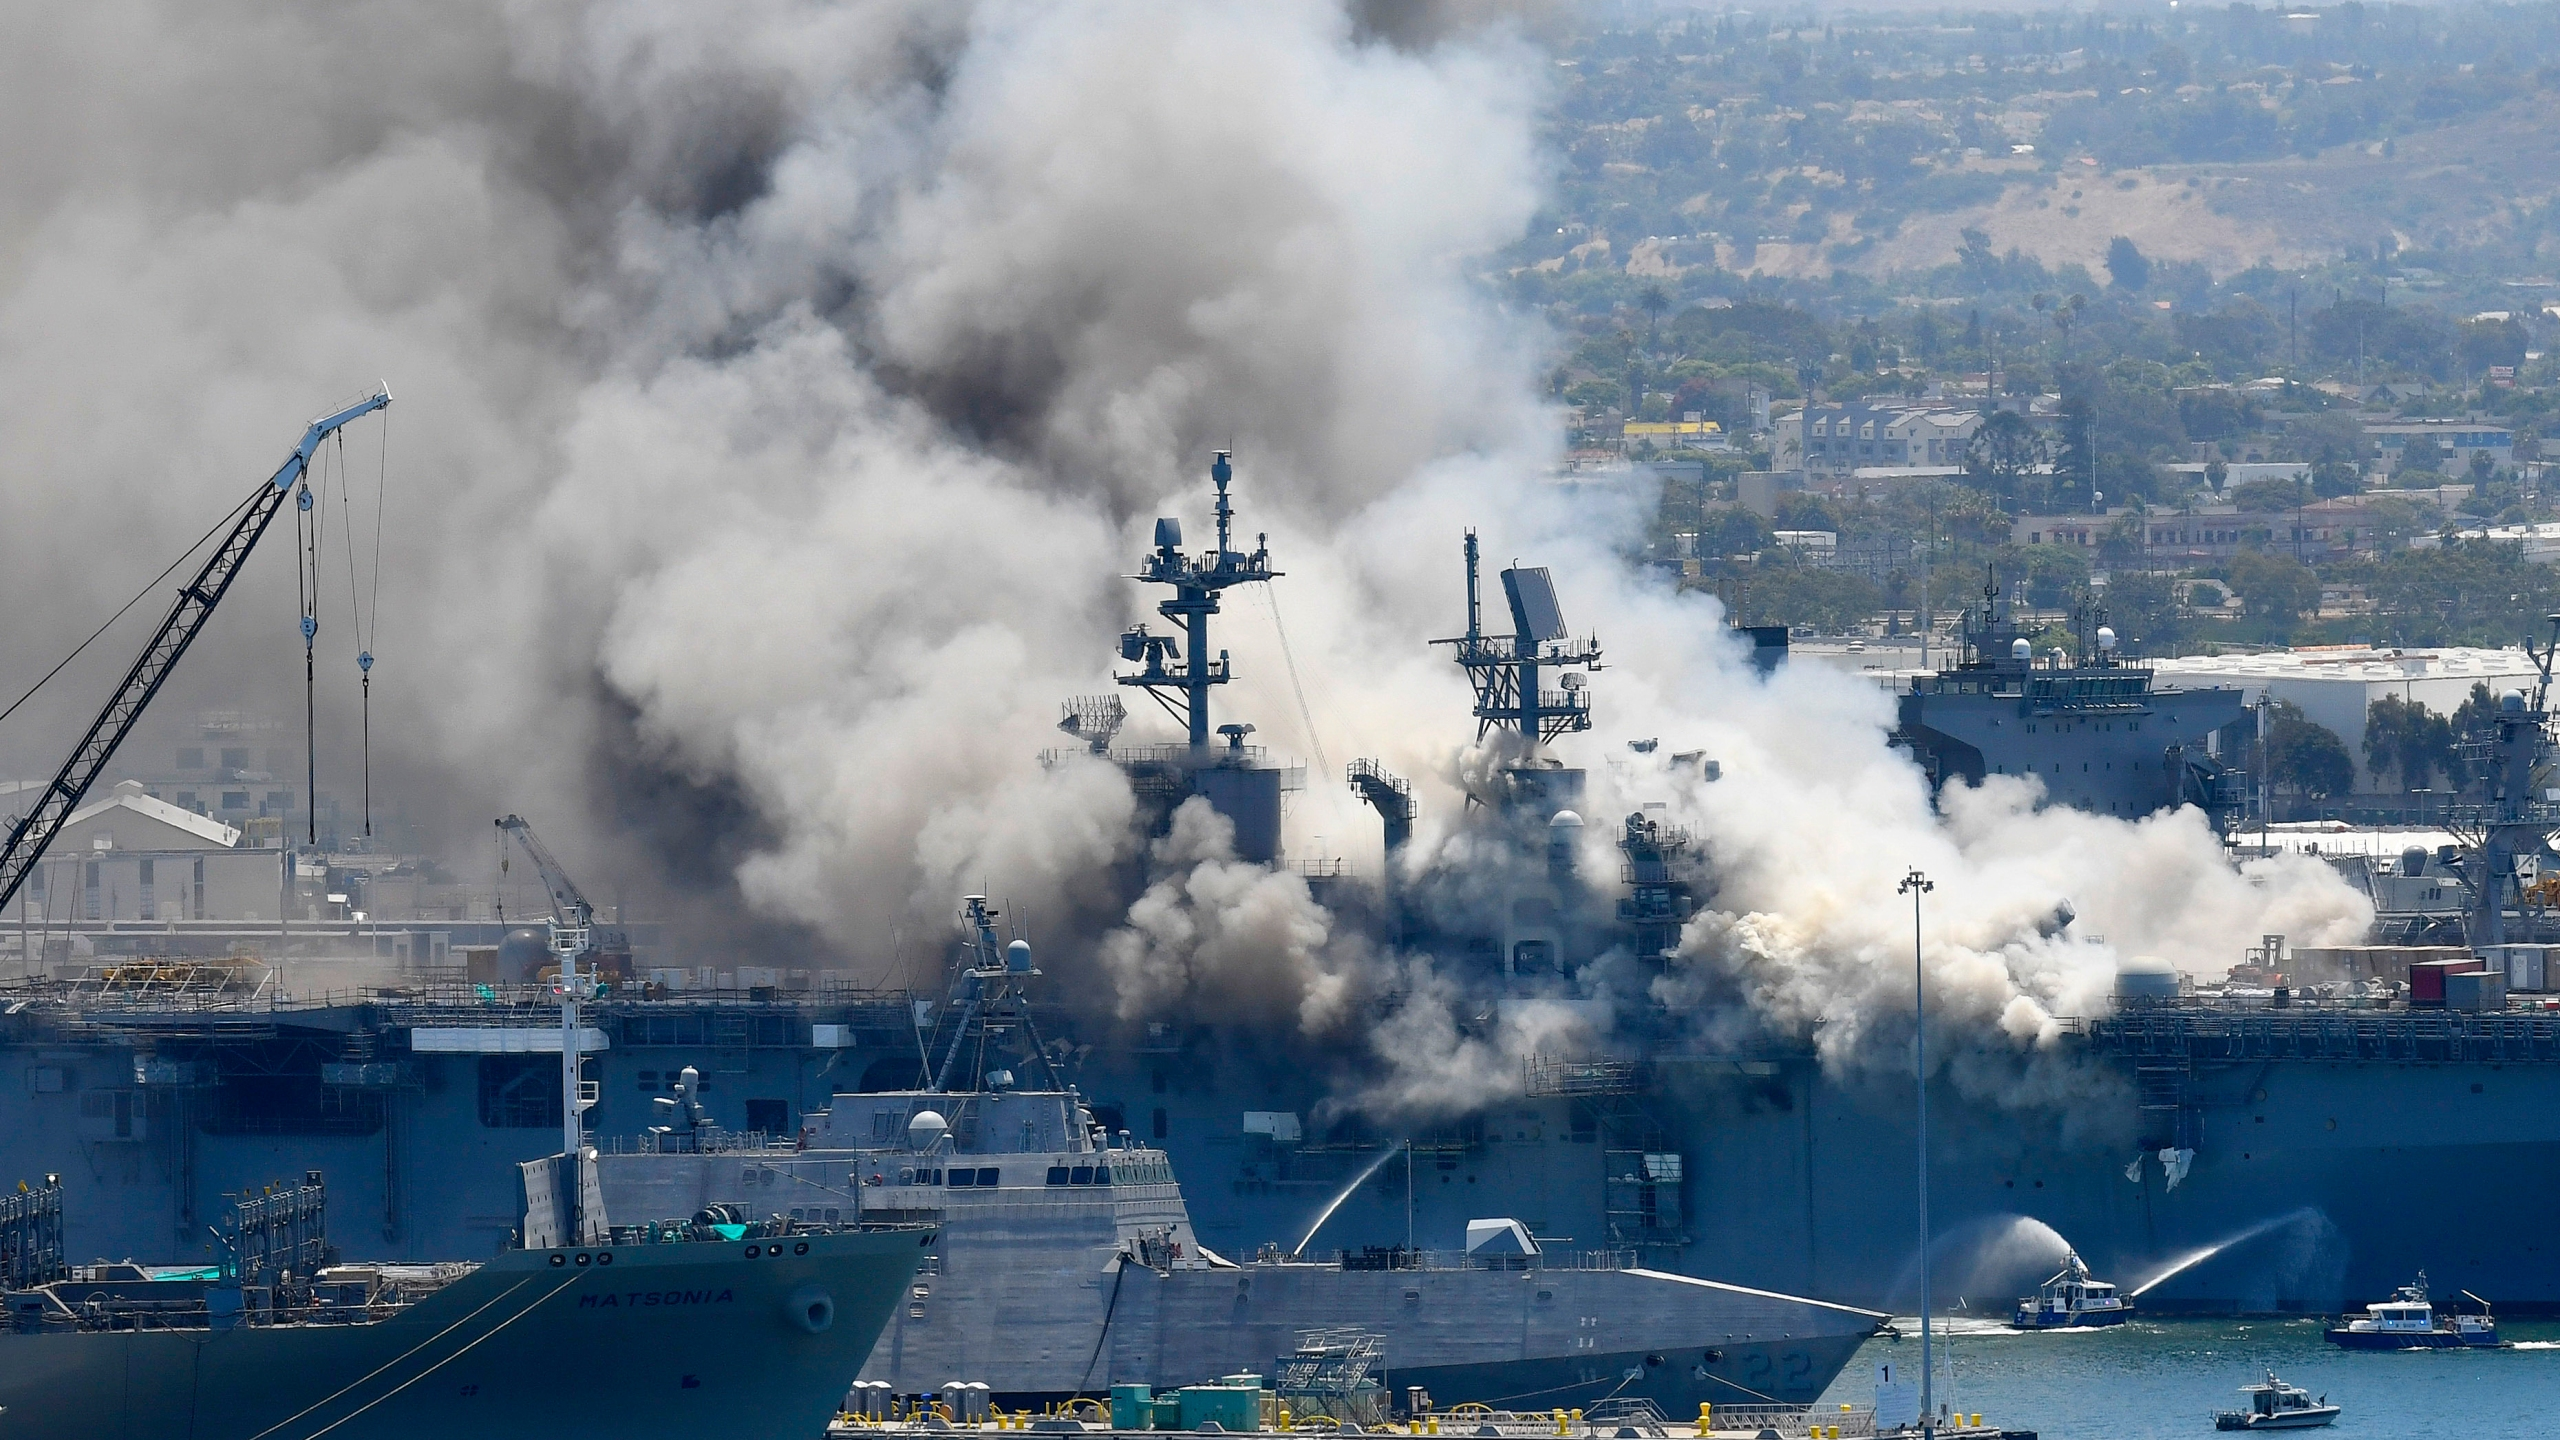 In this July 12, 2020, file photo, smoke rises from the USS Bonhomme Richard in San Diego after an explosion and fire on board the ship at Naval Base San Diego. (Denis Poroy/Associated Press)